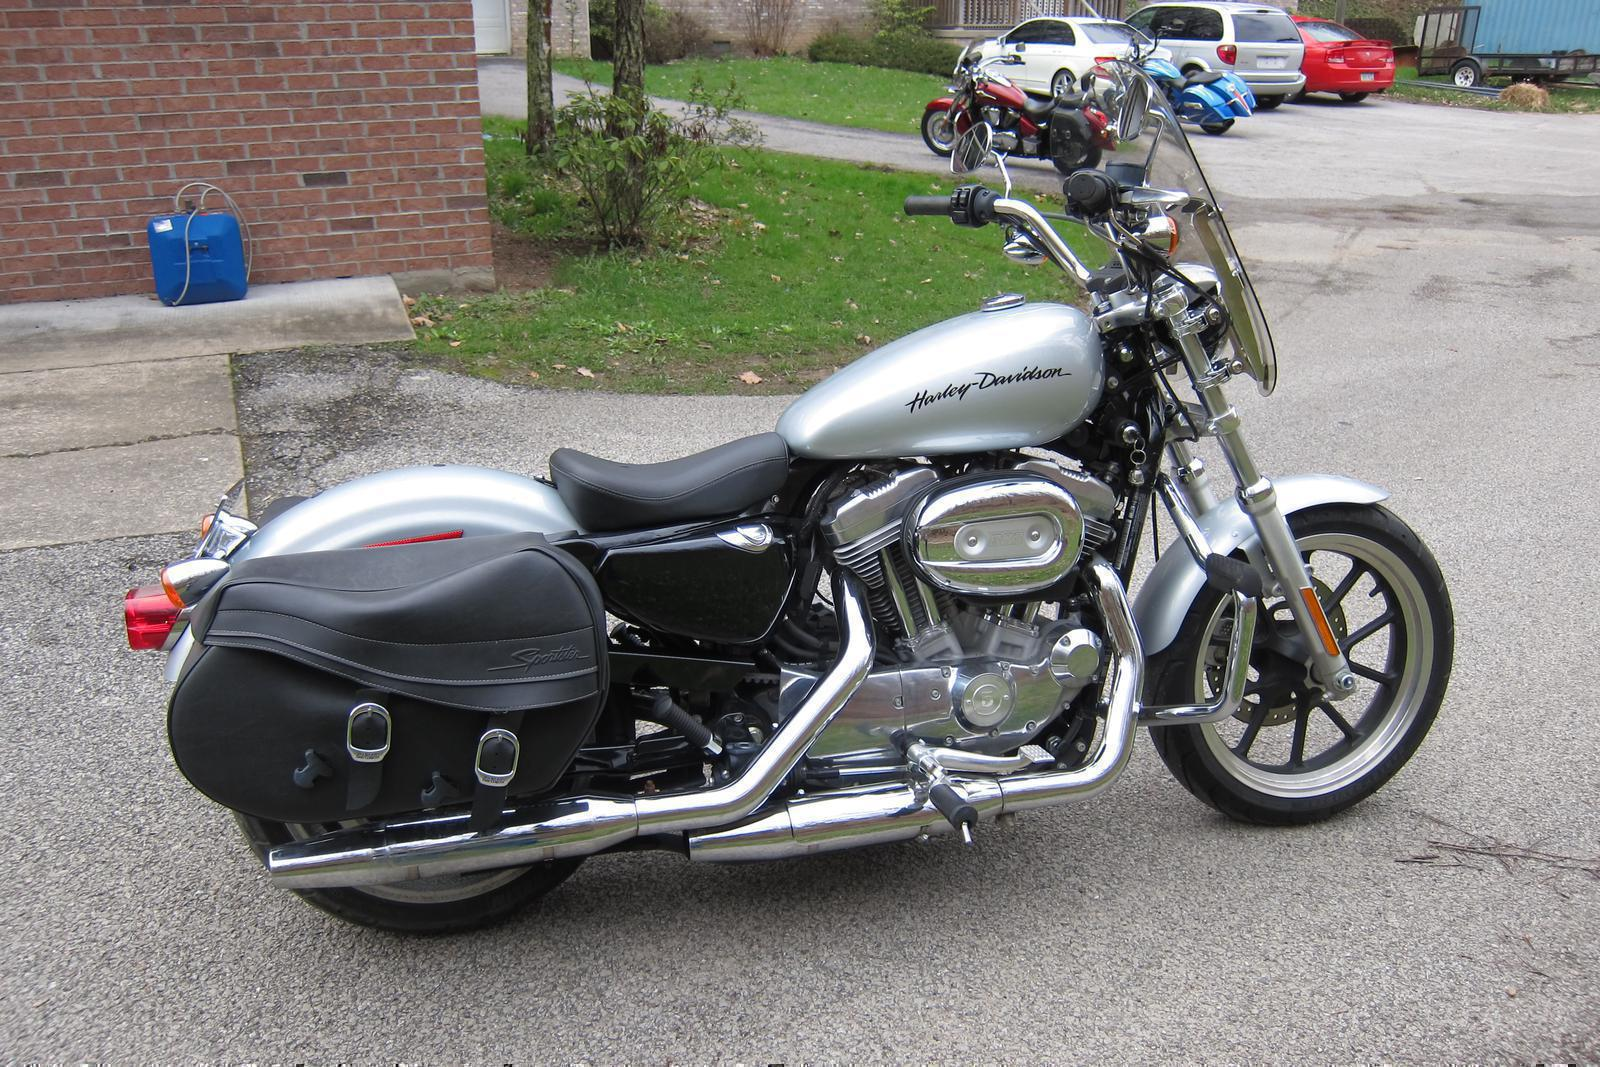 2014 Harley Davidson Sportster 883 Super Low For Sale In Charleston Wire Harness A 73 Ironhead 632